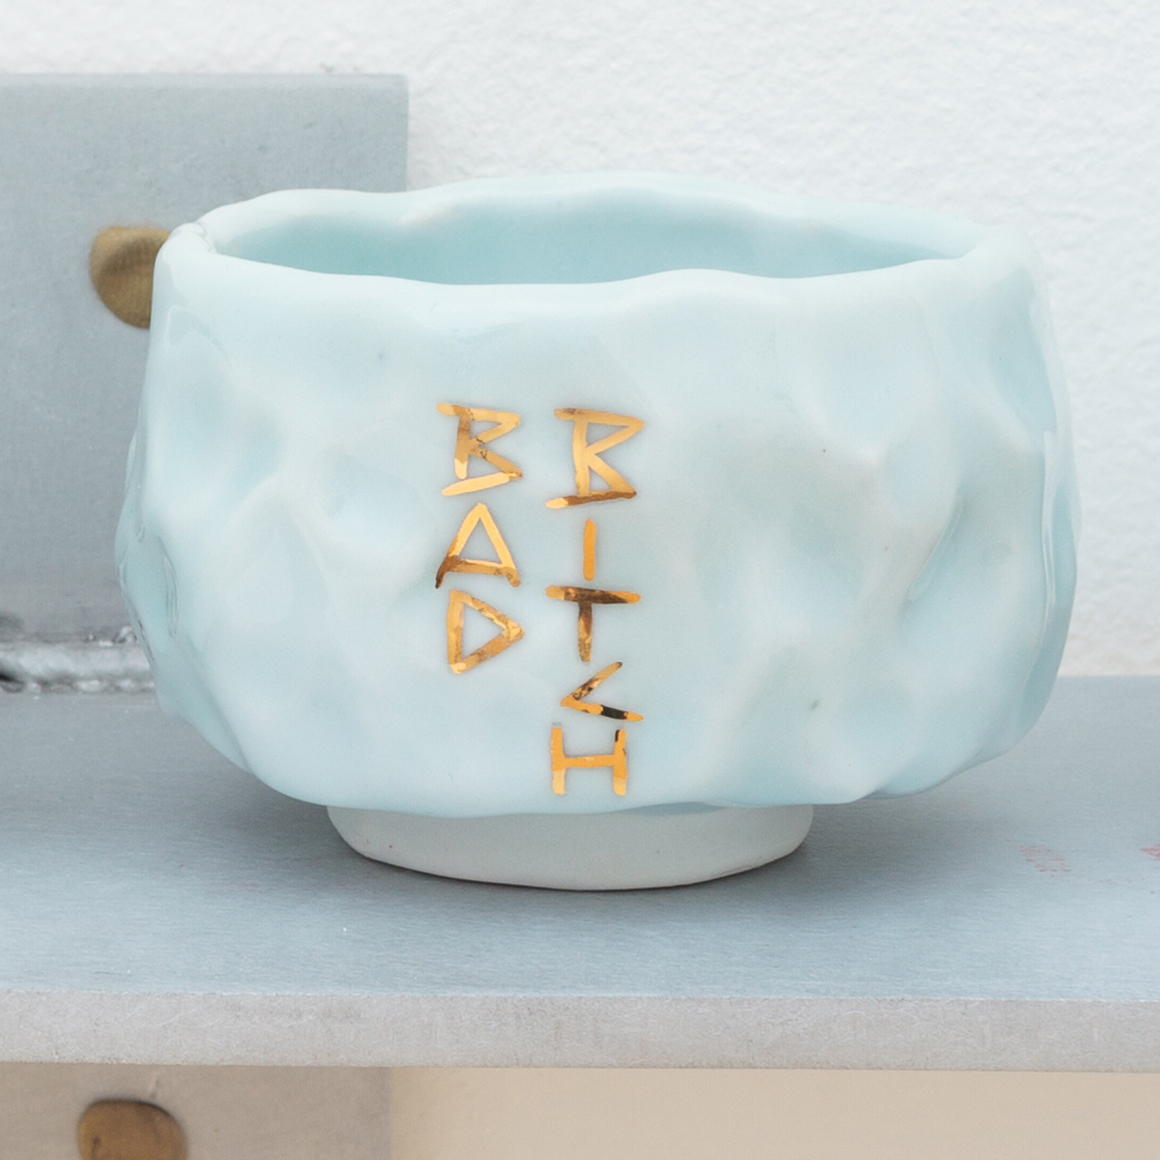 "<p><span class=""name"">Patrice Renee Washington</span><br><em>Bad Bitch Cup (2)</em><span class='media'>Glazed porcelain, gold luster, aluminum, Sculpey clay</span>2 x 2.7625 x 2.7625 in  (5.1 x 7 x 7 cm)<br>2016<br><a class='inquire' href='mailto:info@gildargallery.com?subject=Artwork Inquiry PWAS0003&body=I am interested in finding out more about Bad Bitch Cup (2) by Patrice Renee Washington'>Inquire</a></p>"